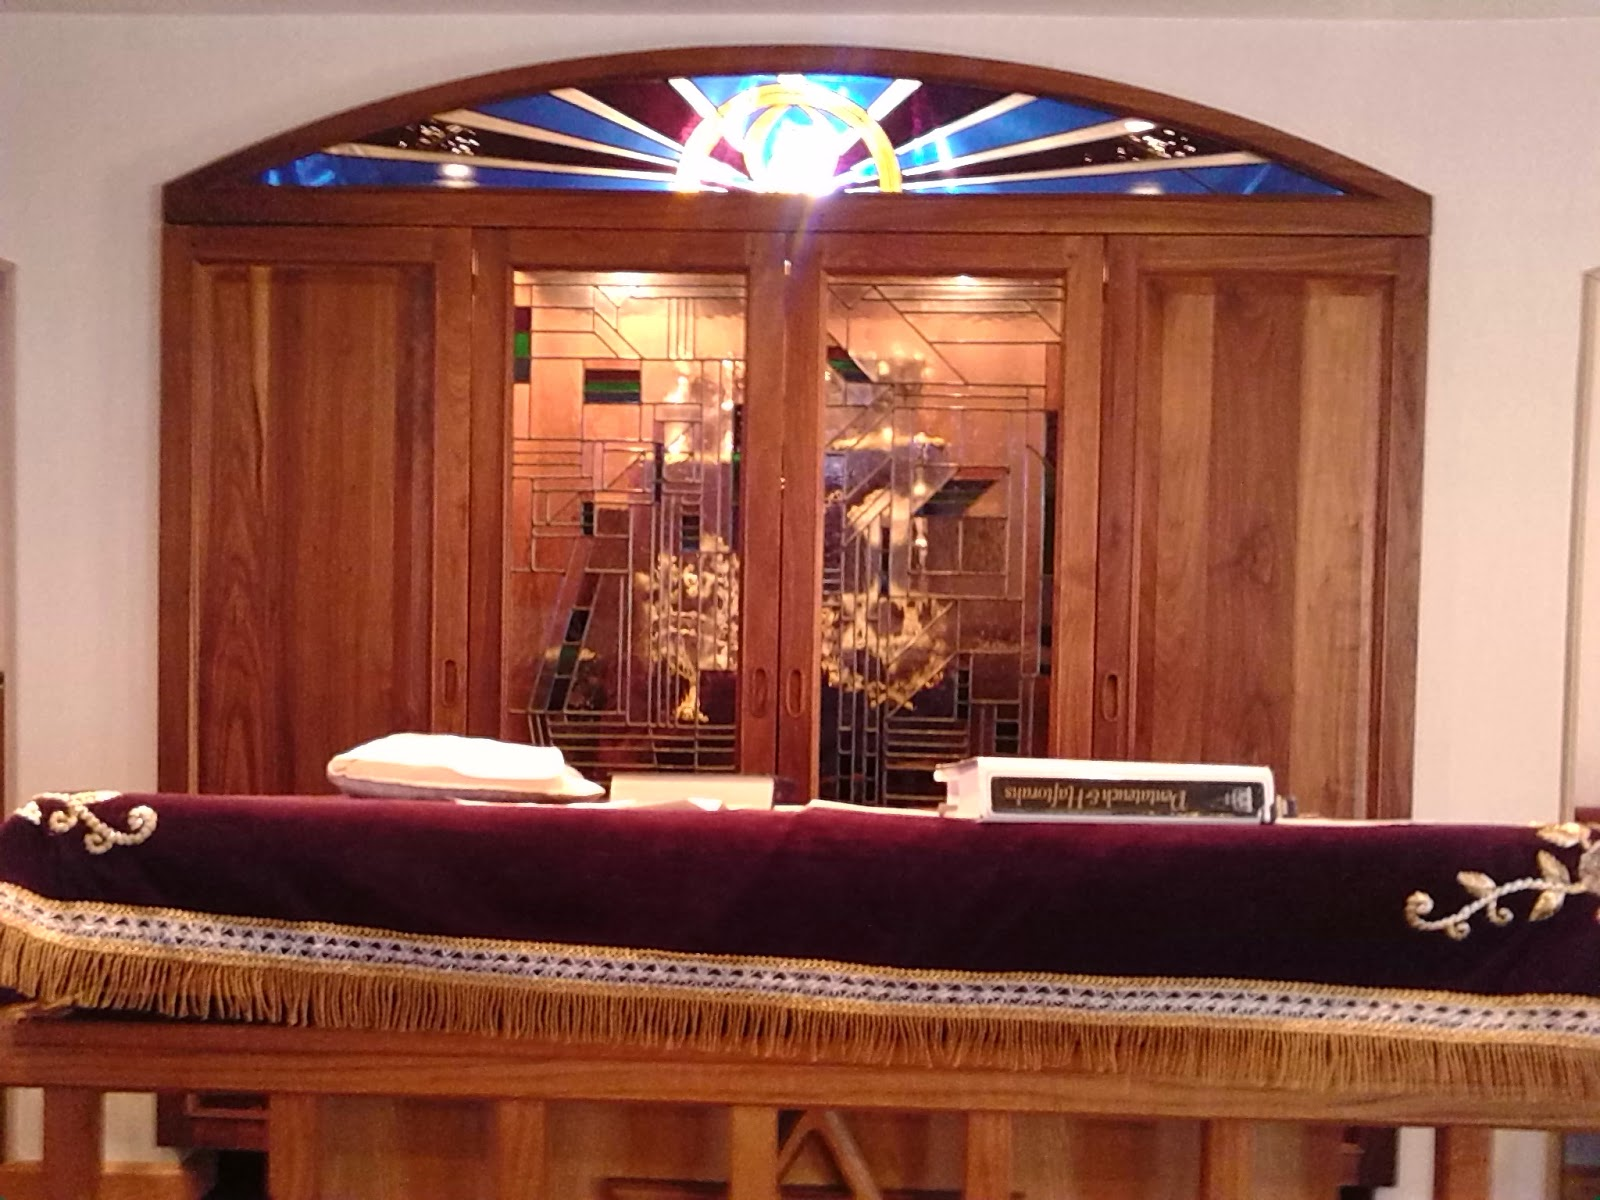 ... A Cabinet Which Contains The Torah Scrolls. This Is The Most Sacred  Space In A Synagogue And Represents Godu0027s Presence On Earth Through The  Word.